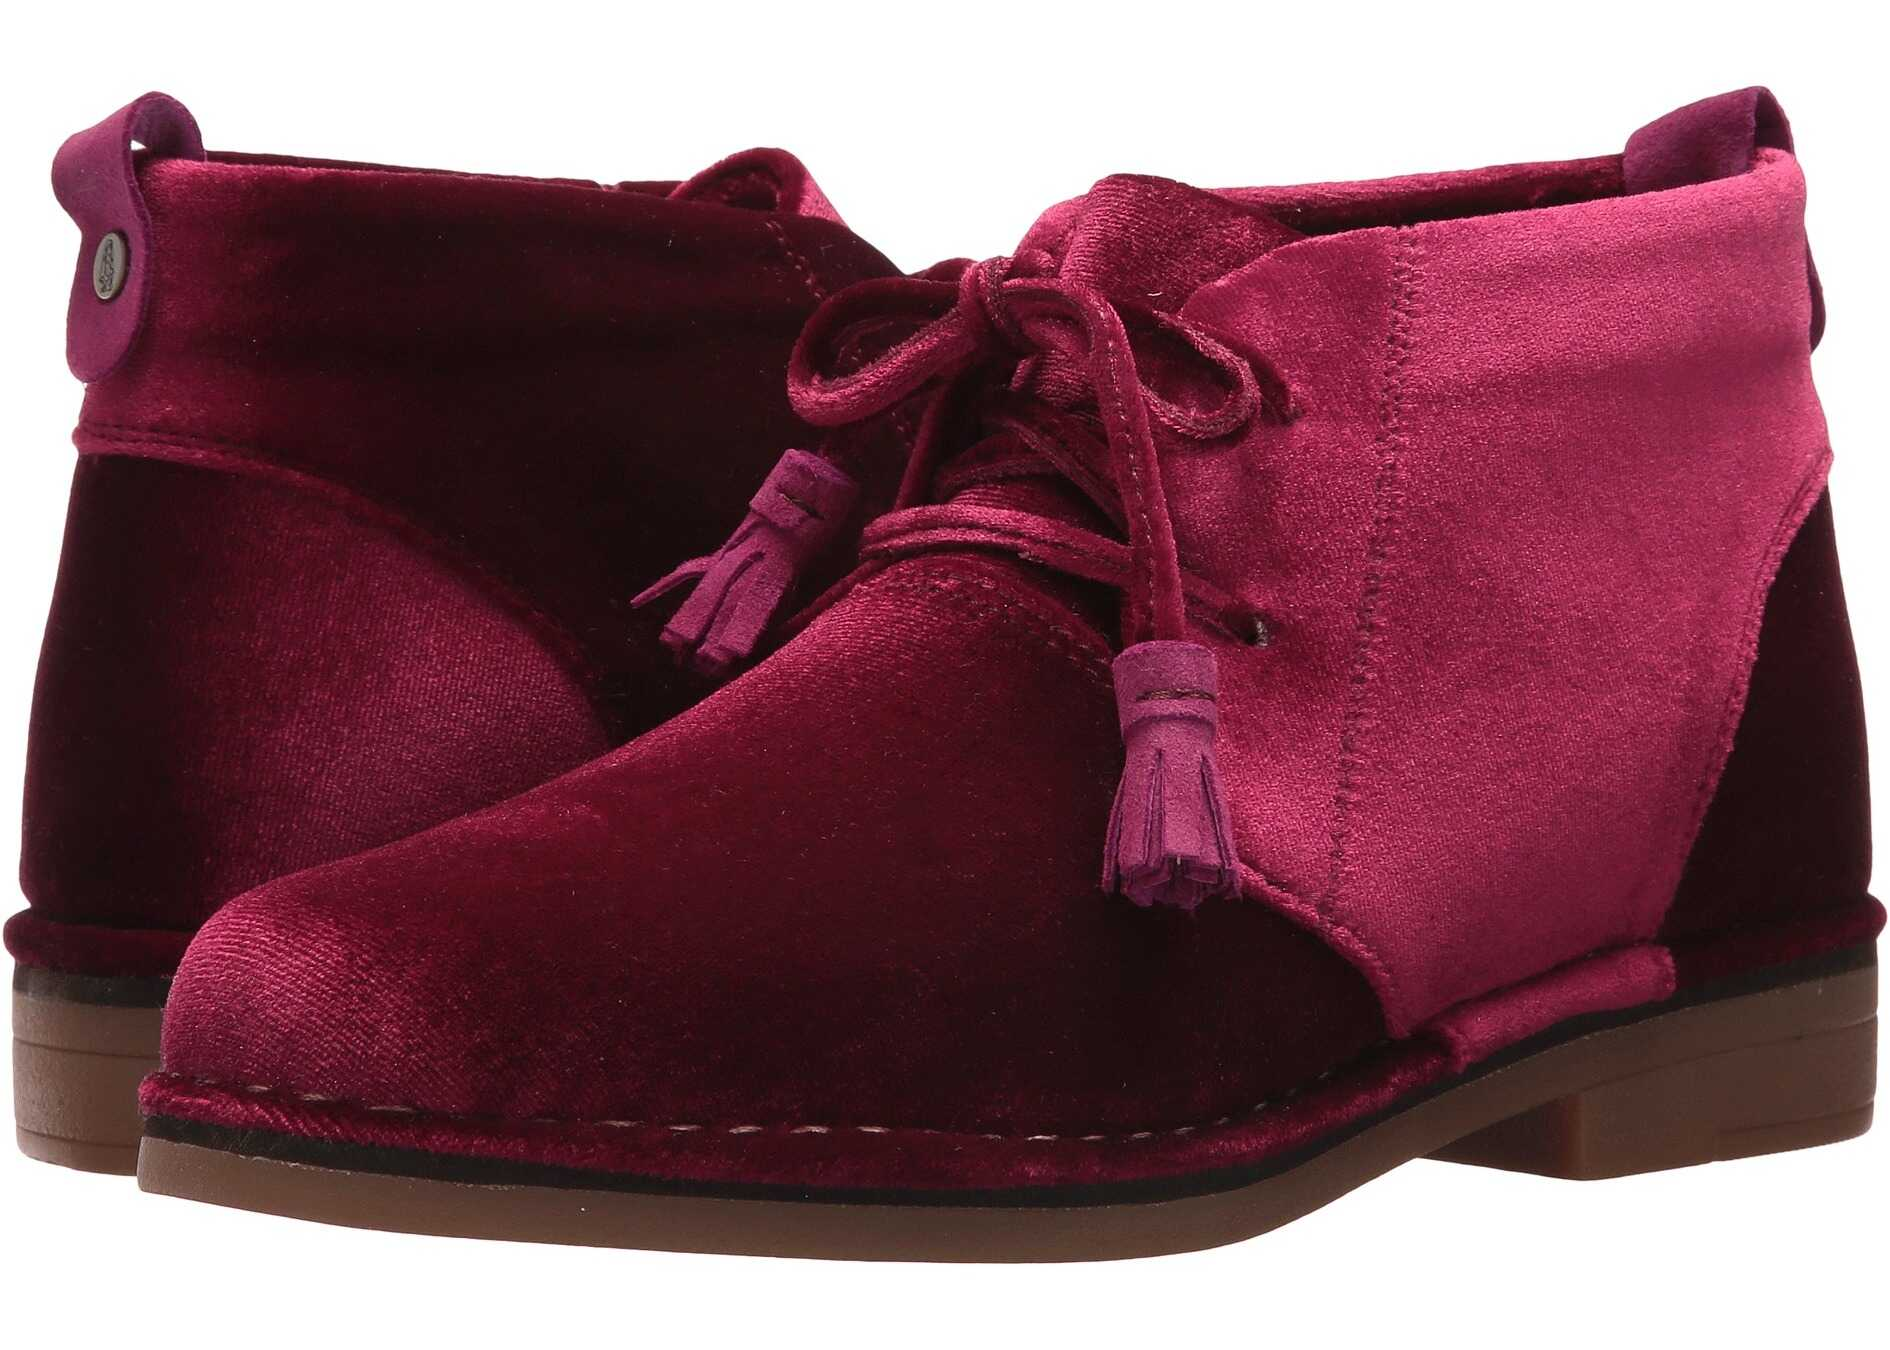 Hush Puppies Cyra Catelyn Wine Velvet